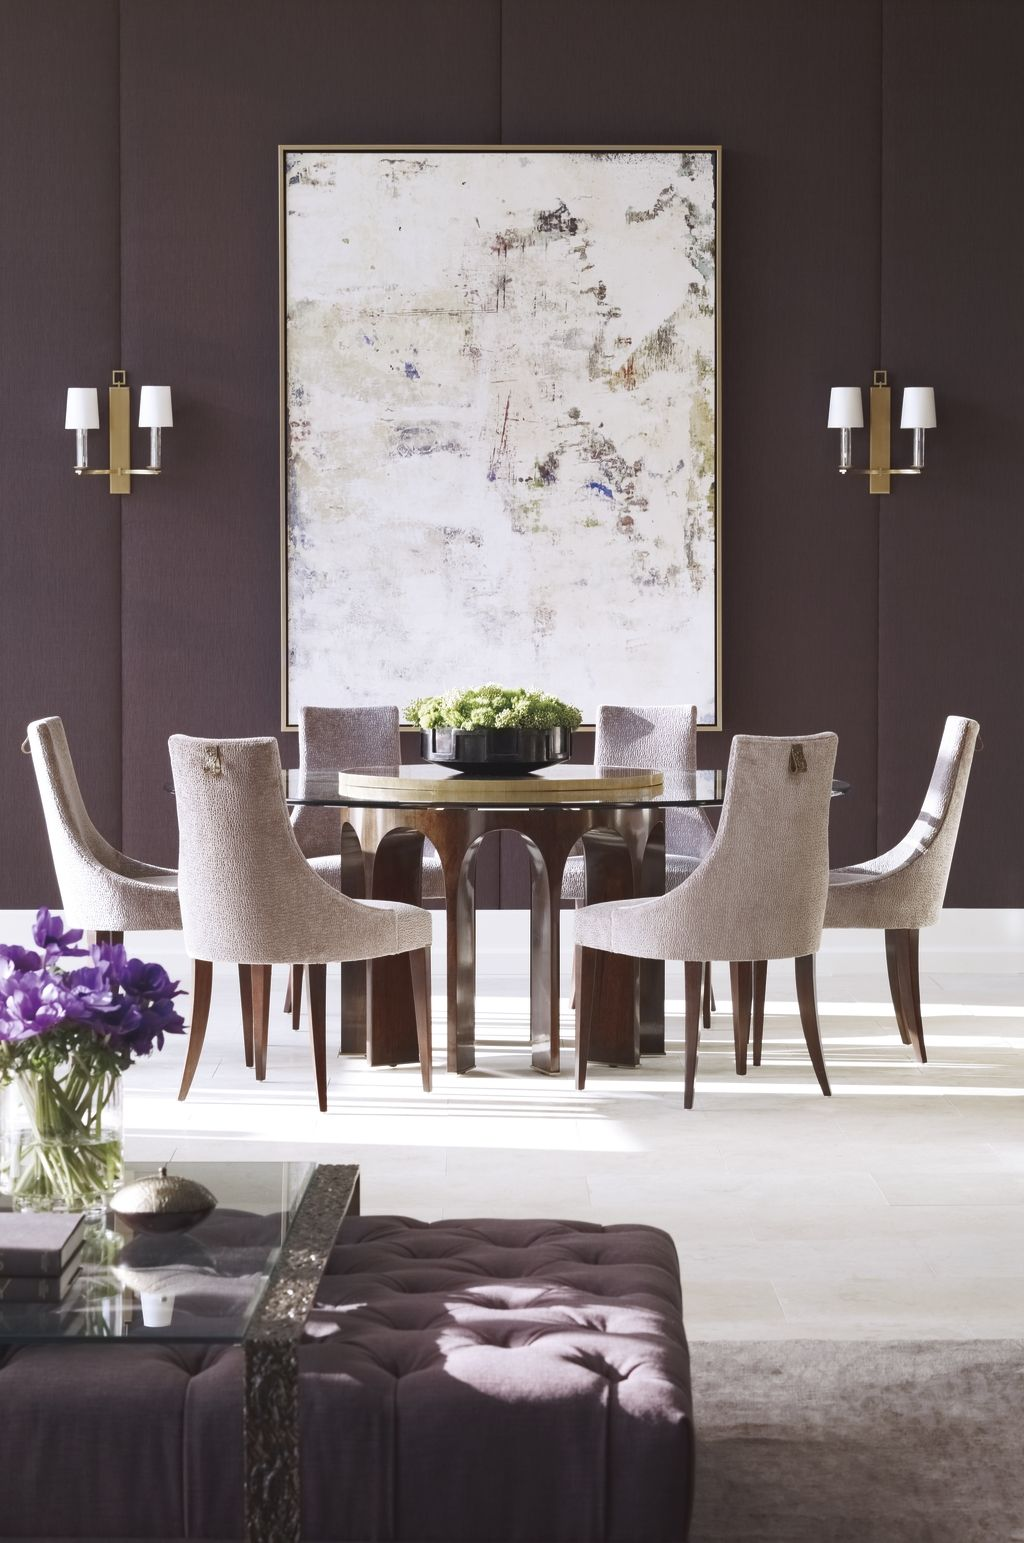 Baker Furniture Thomas Pheasant Browse Products Luxury Dining Room Dining Room Design Dining Room Decor